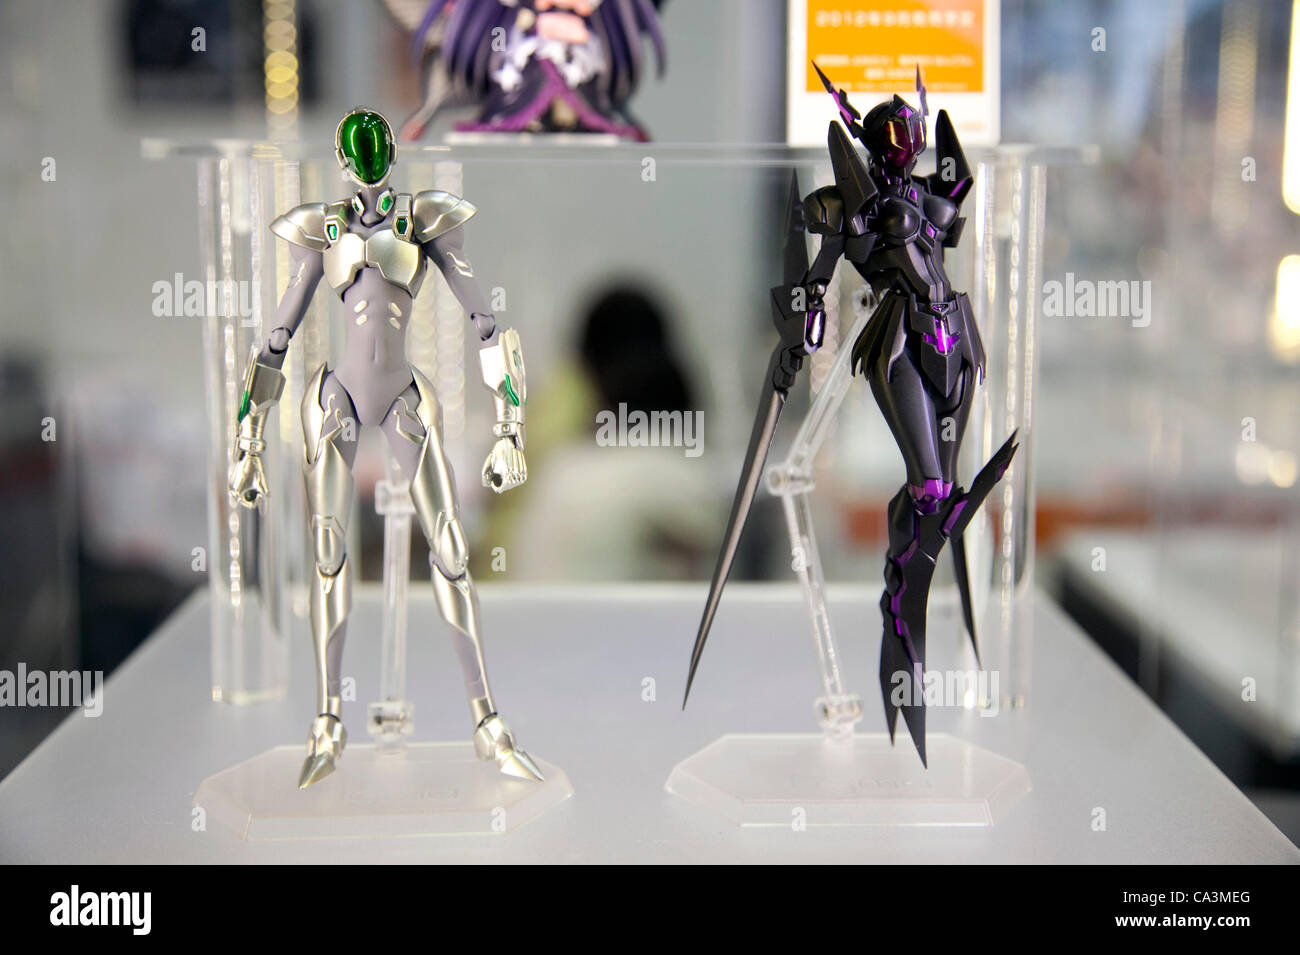 June 2 2012 Tokyo Japan Anime Toys Are Displayed For Showcase